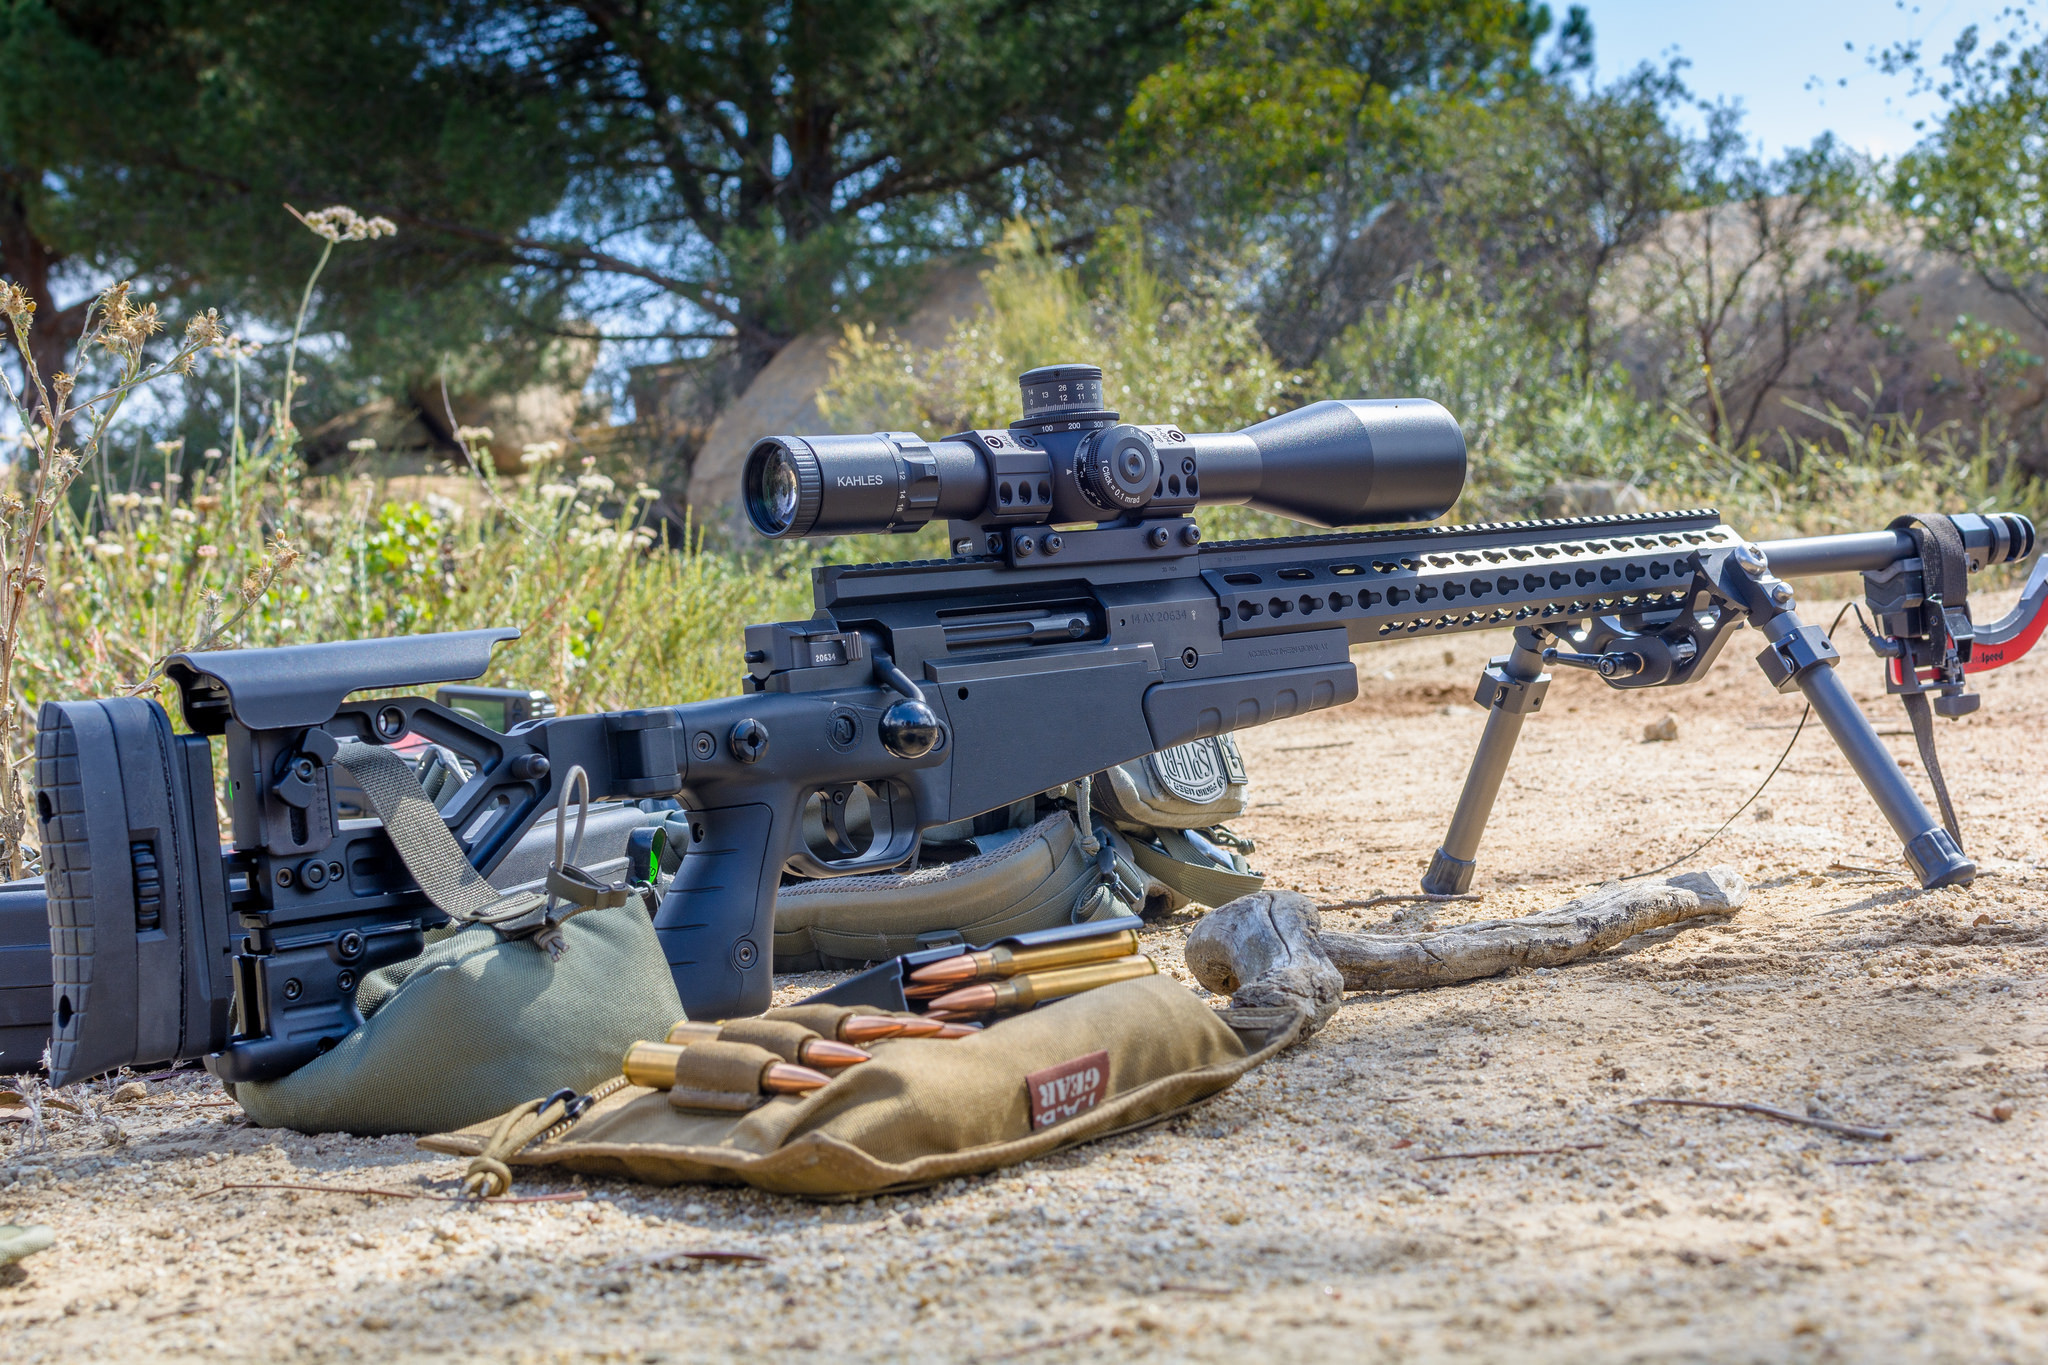 armys long serving sniper rifle - HD1280×853